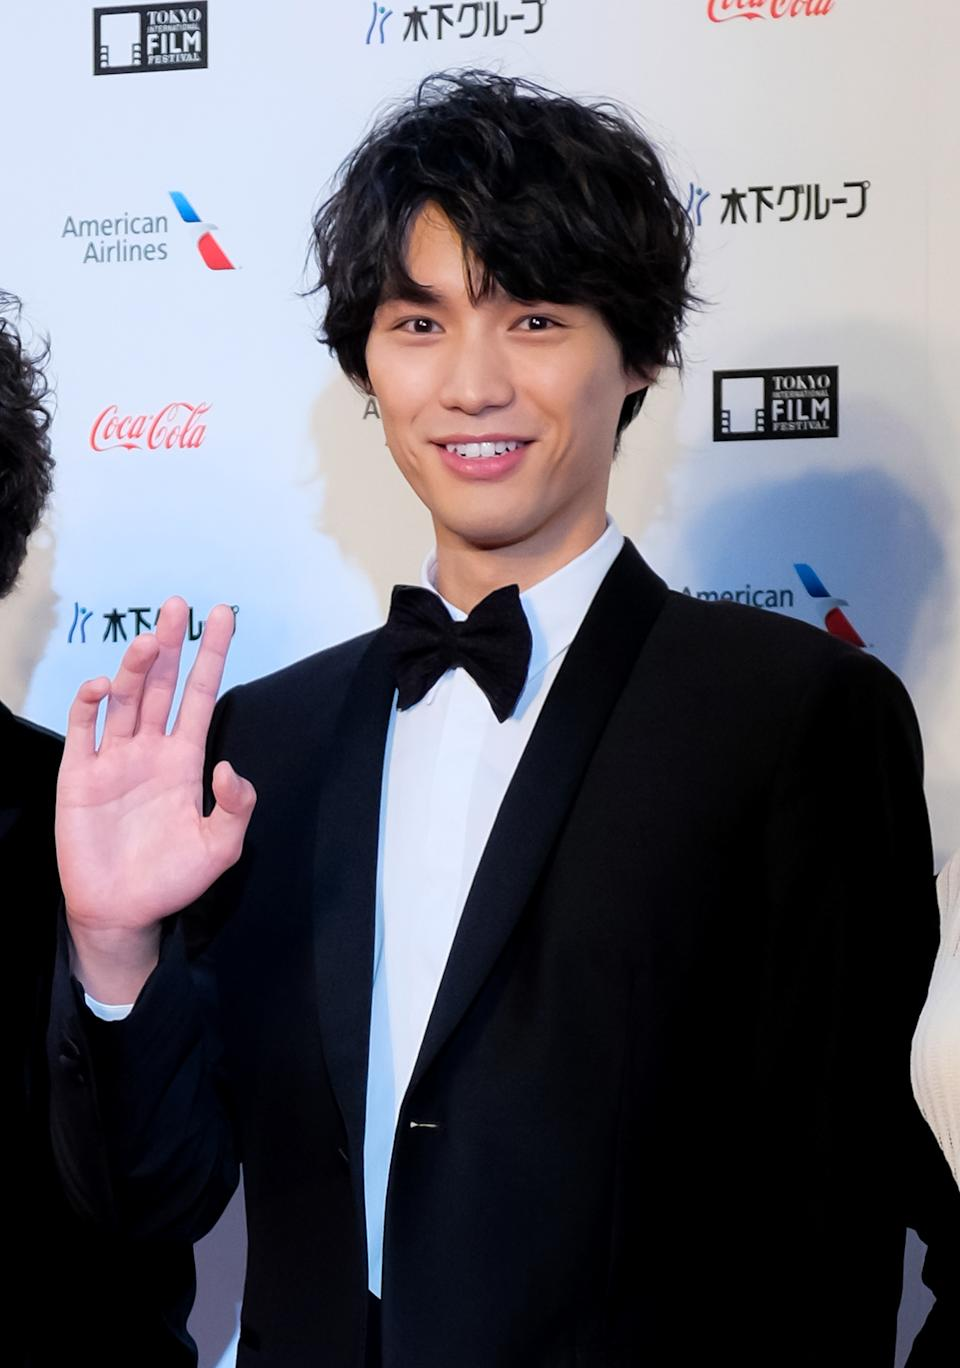 TOKYO, JAPAN - OCTOBER 25:  Actor Sota Fukushi attends the opening of the Tokyo International Film Festival 2018 on October 25, 2018 in Tokyo, Japan. (Photo by Keith Tsuji/Getty Images)